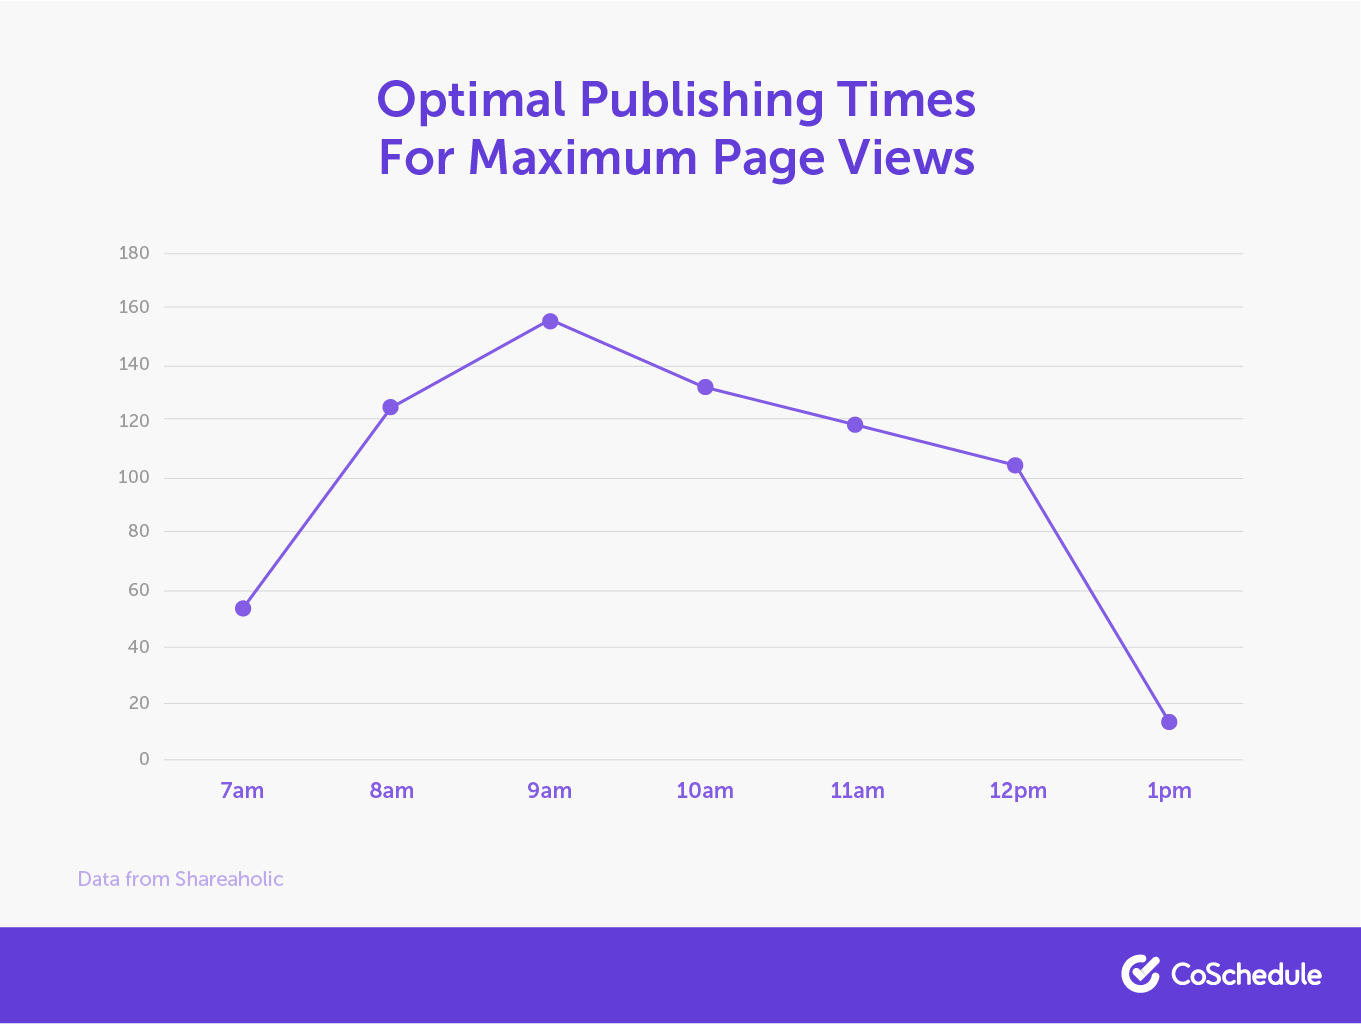 Best publishing times for maximum page views